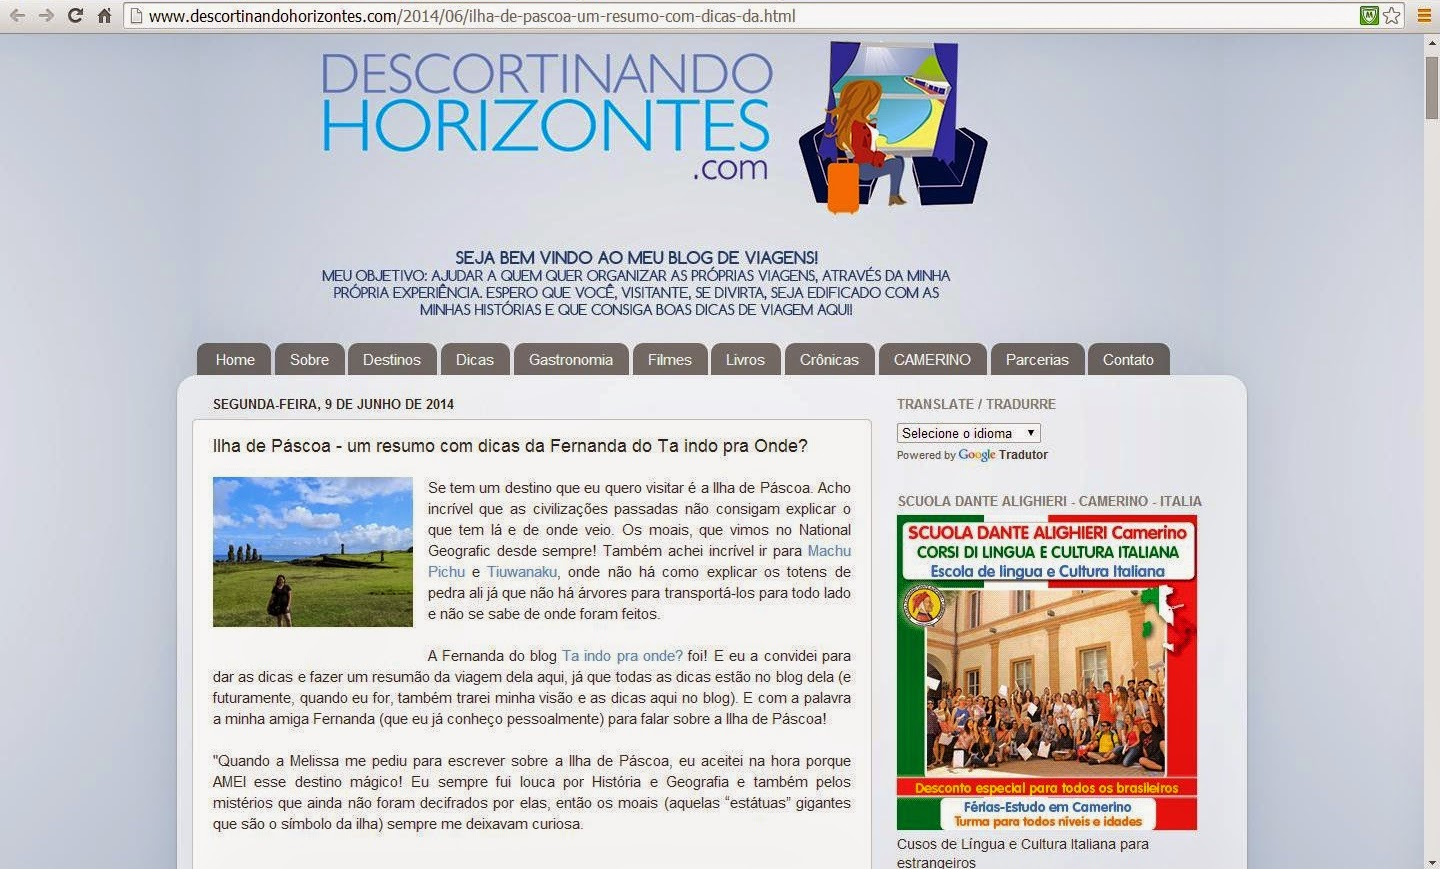 Blog Descortinando Horizontes